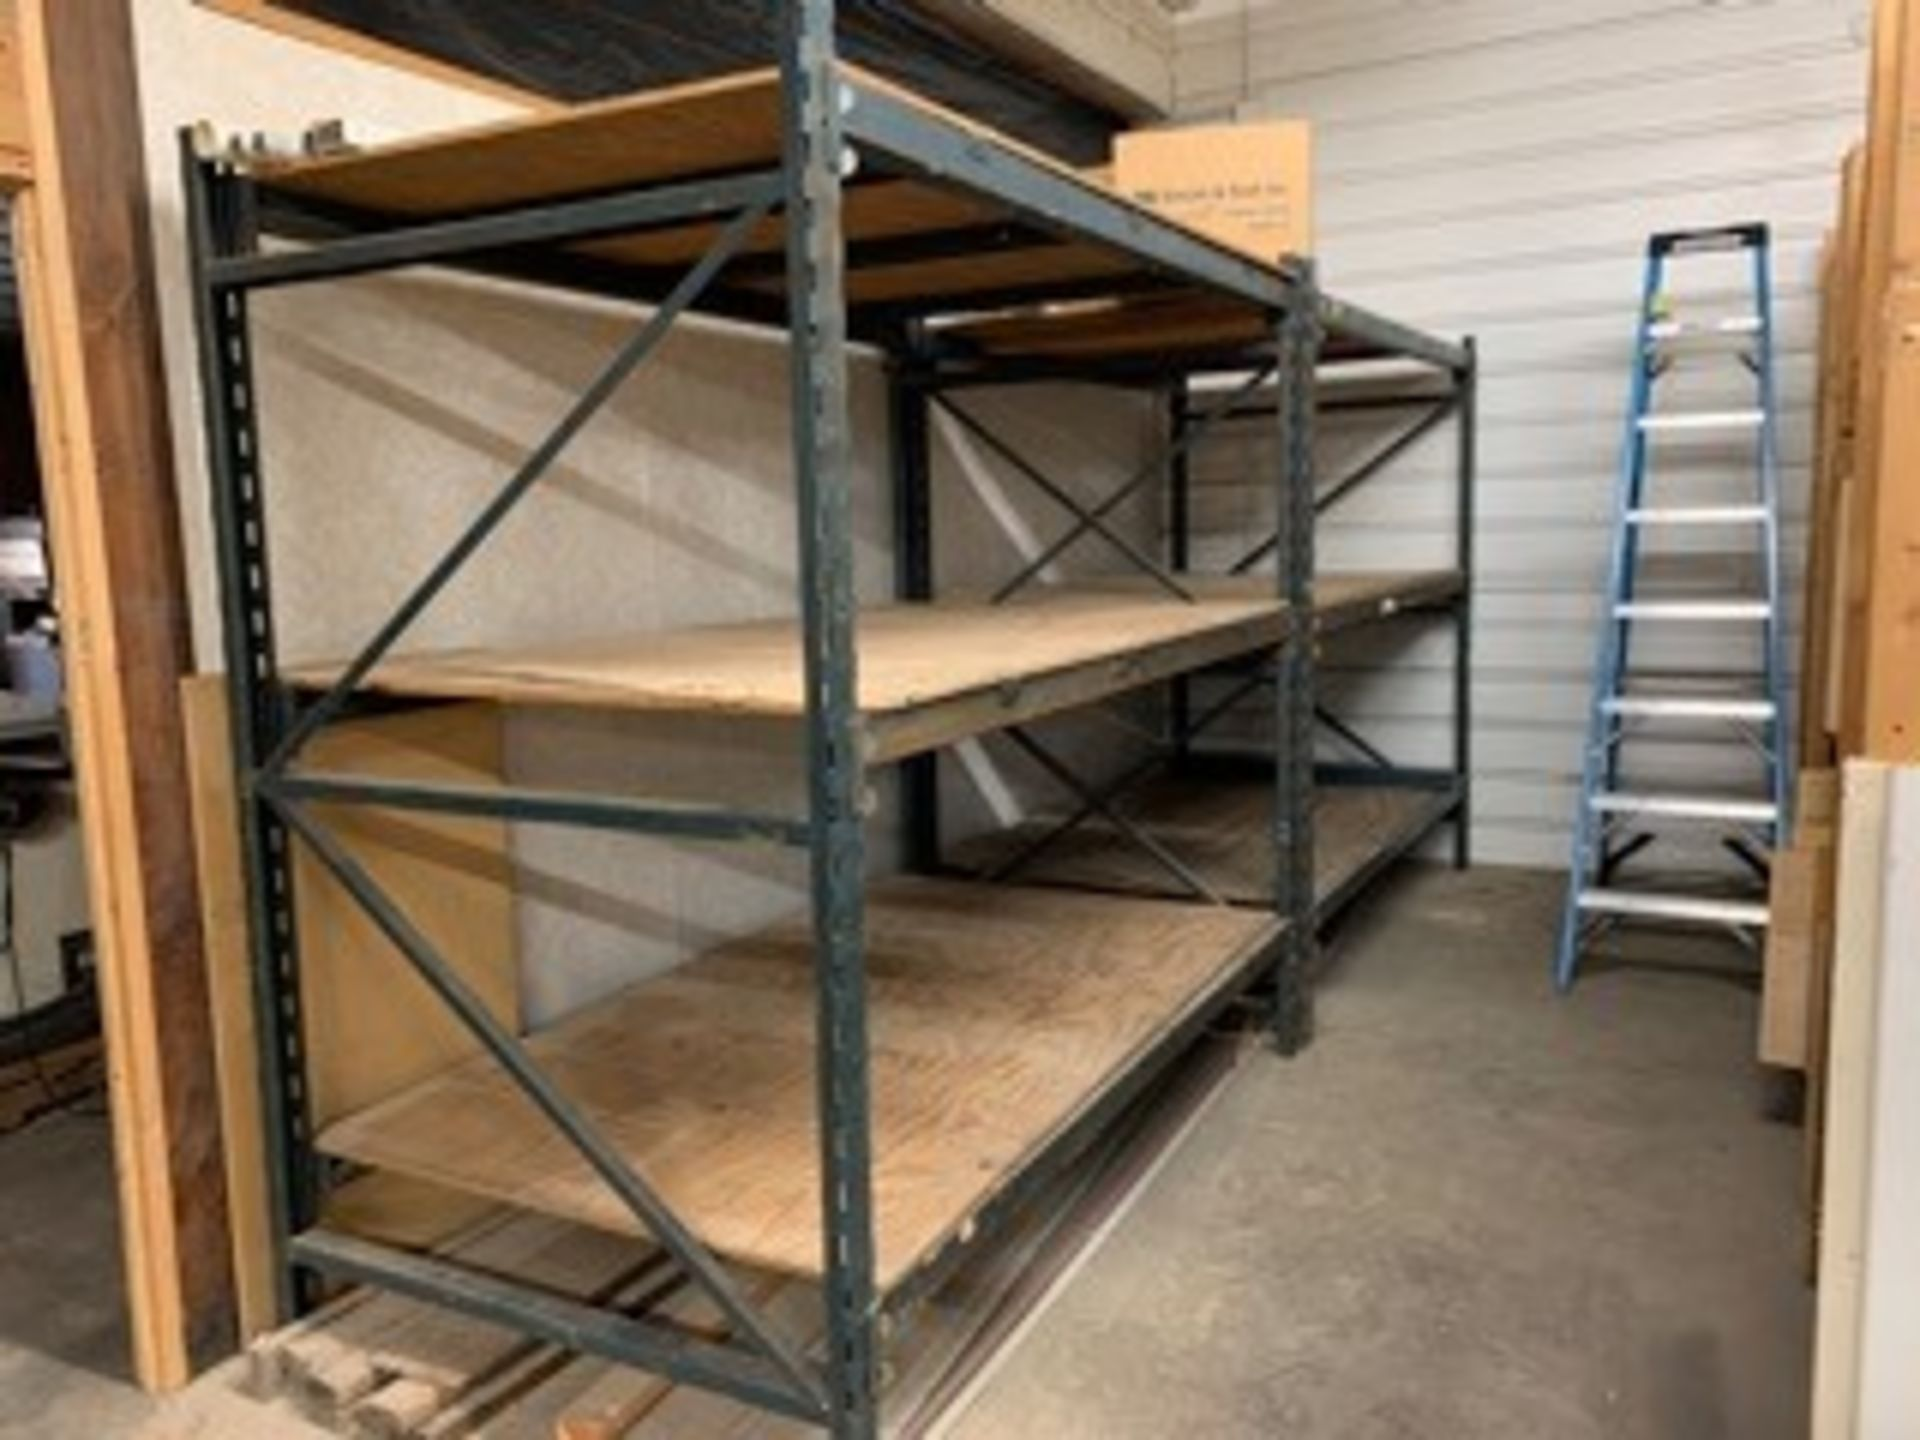 Lot 5068 - PALLET RACKS (LOCATED AT: 16335 LIMA ROAD, HUNTERTOWN, IN 46748)